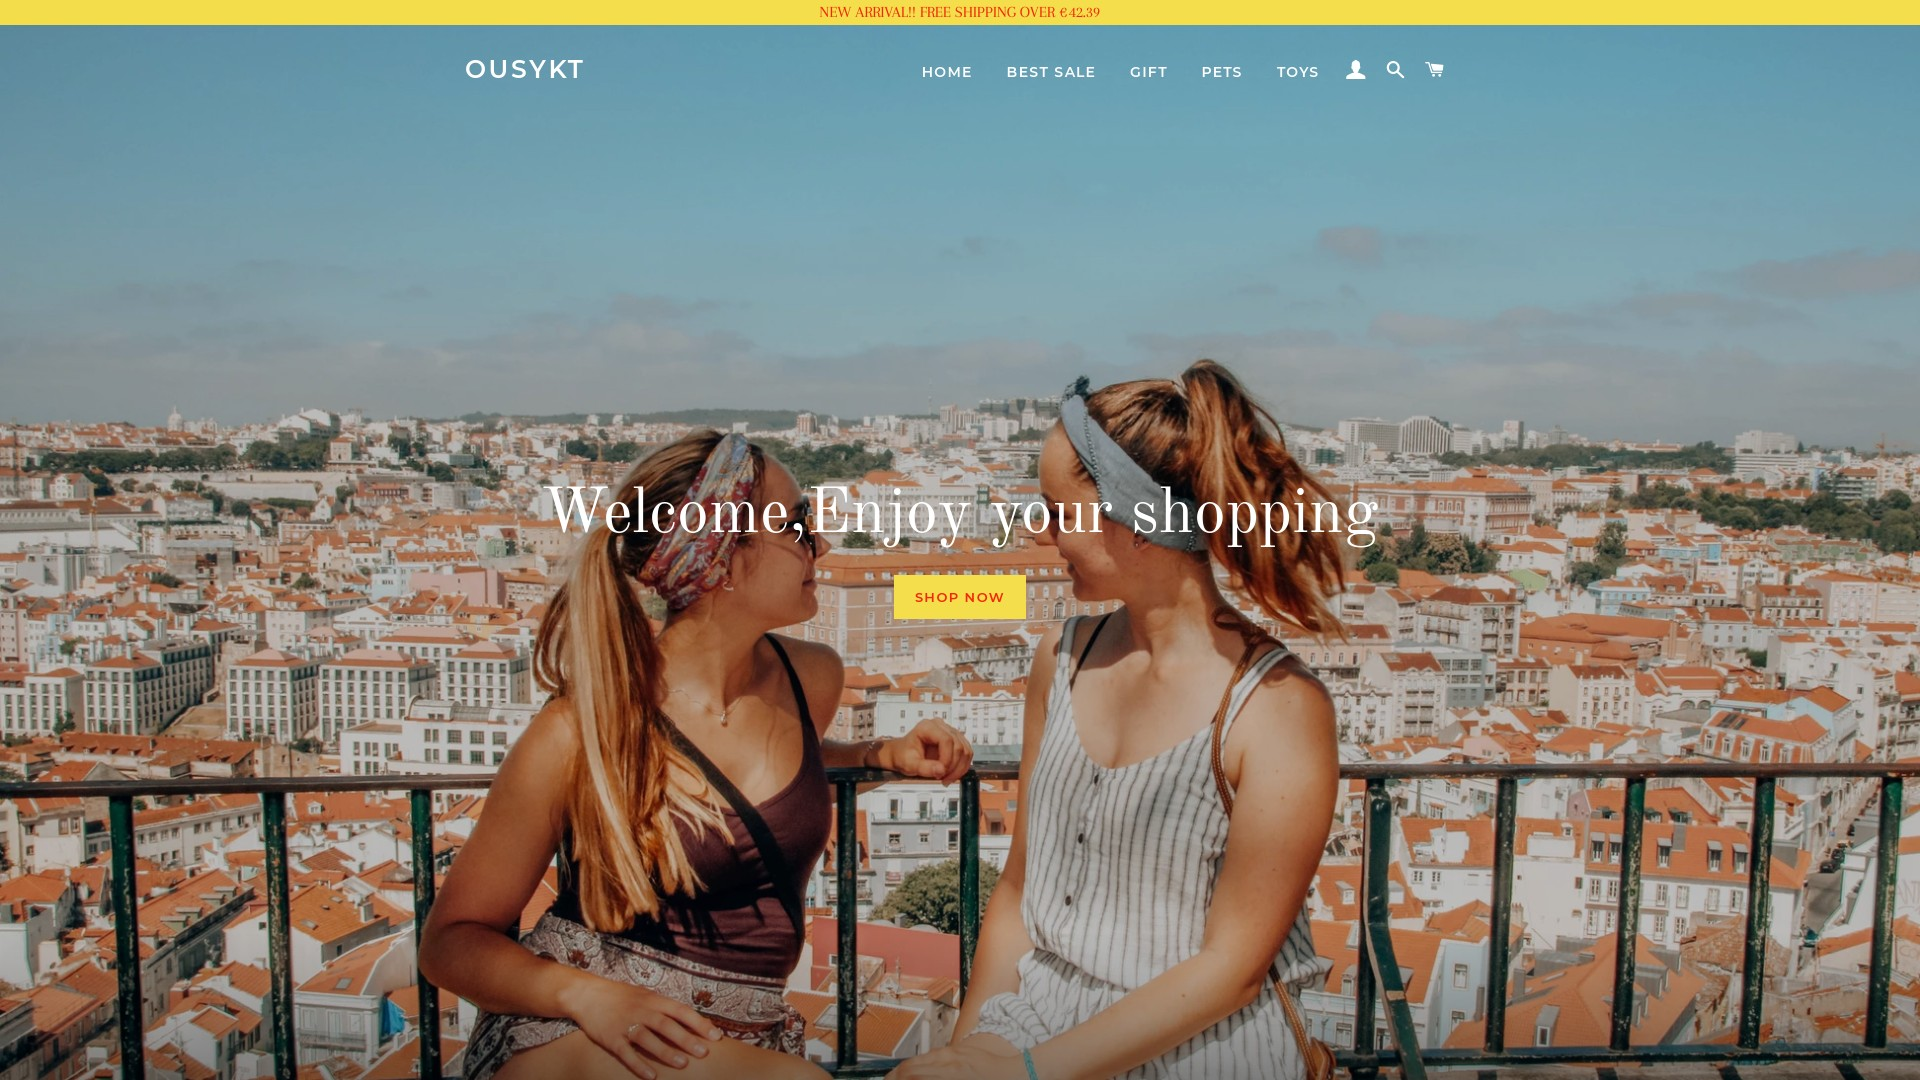 Is Ousykt a Scam? See the Review of the Online Store